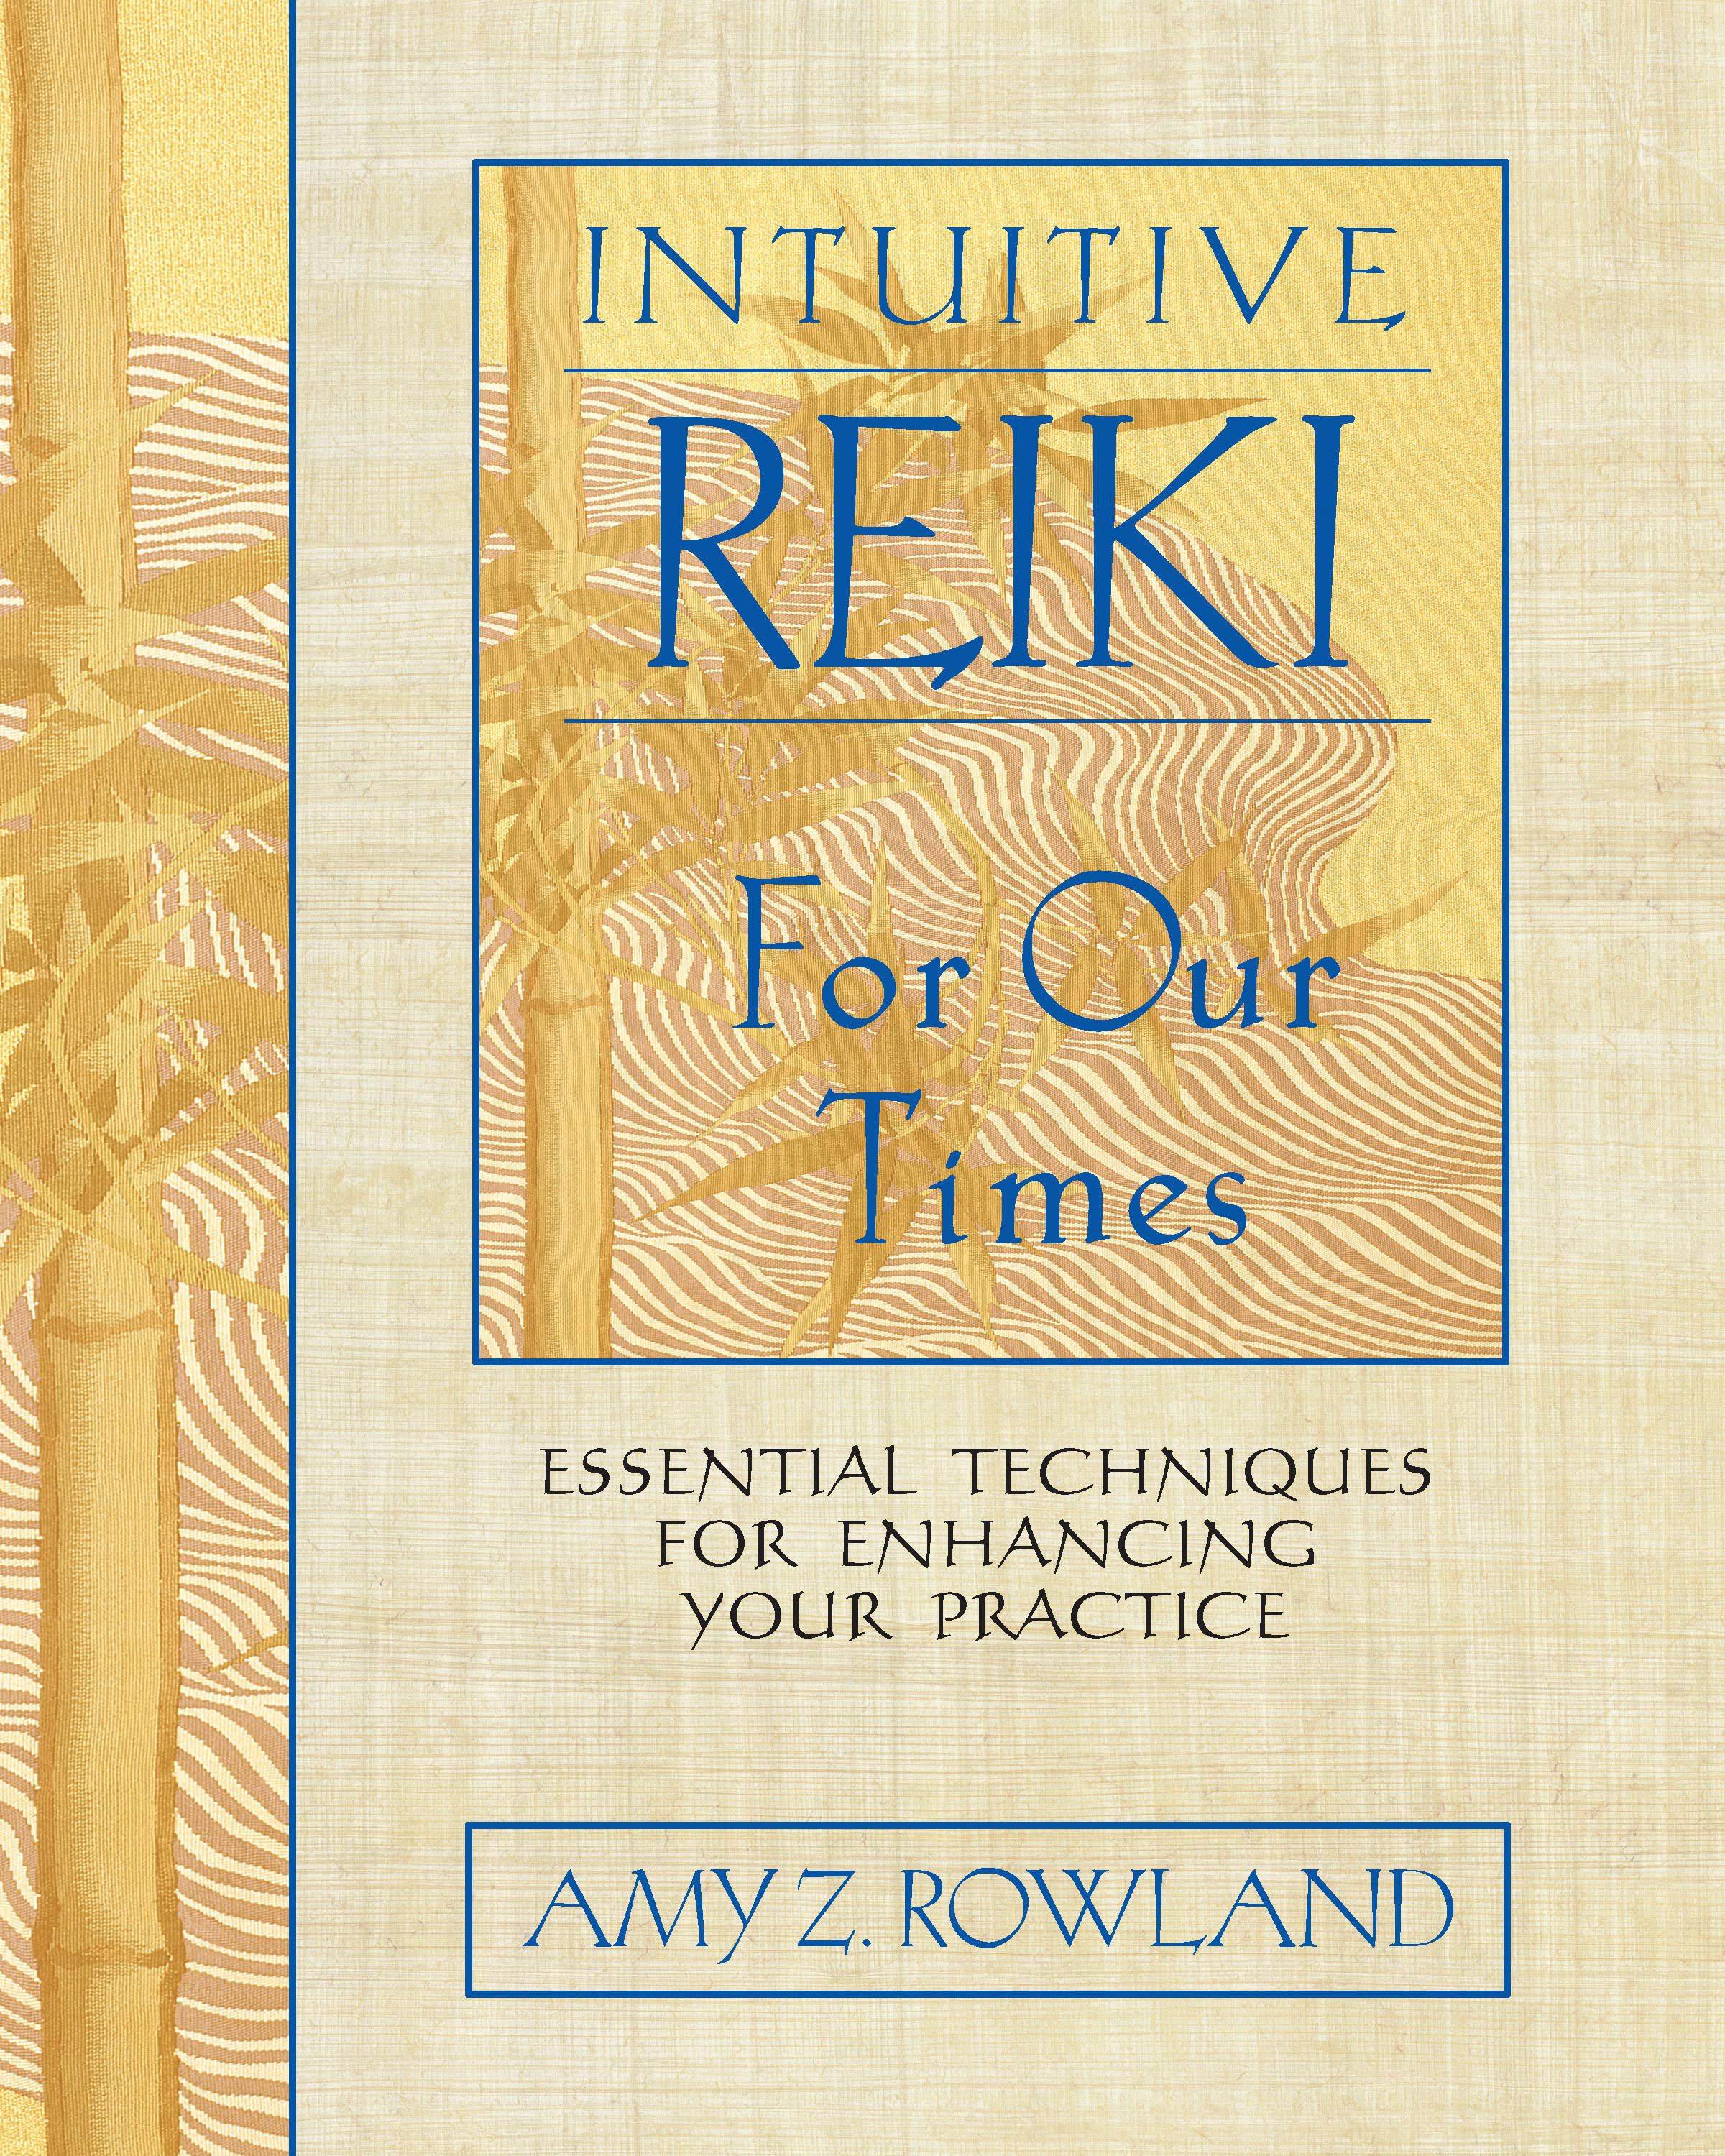 Intuitive-reiki-for-our-times-9781594770999_hr